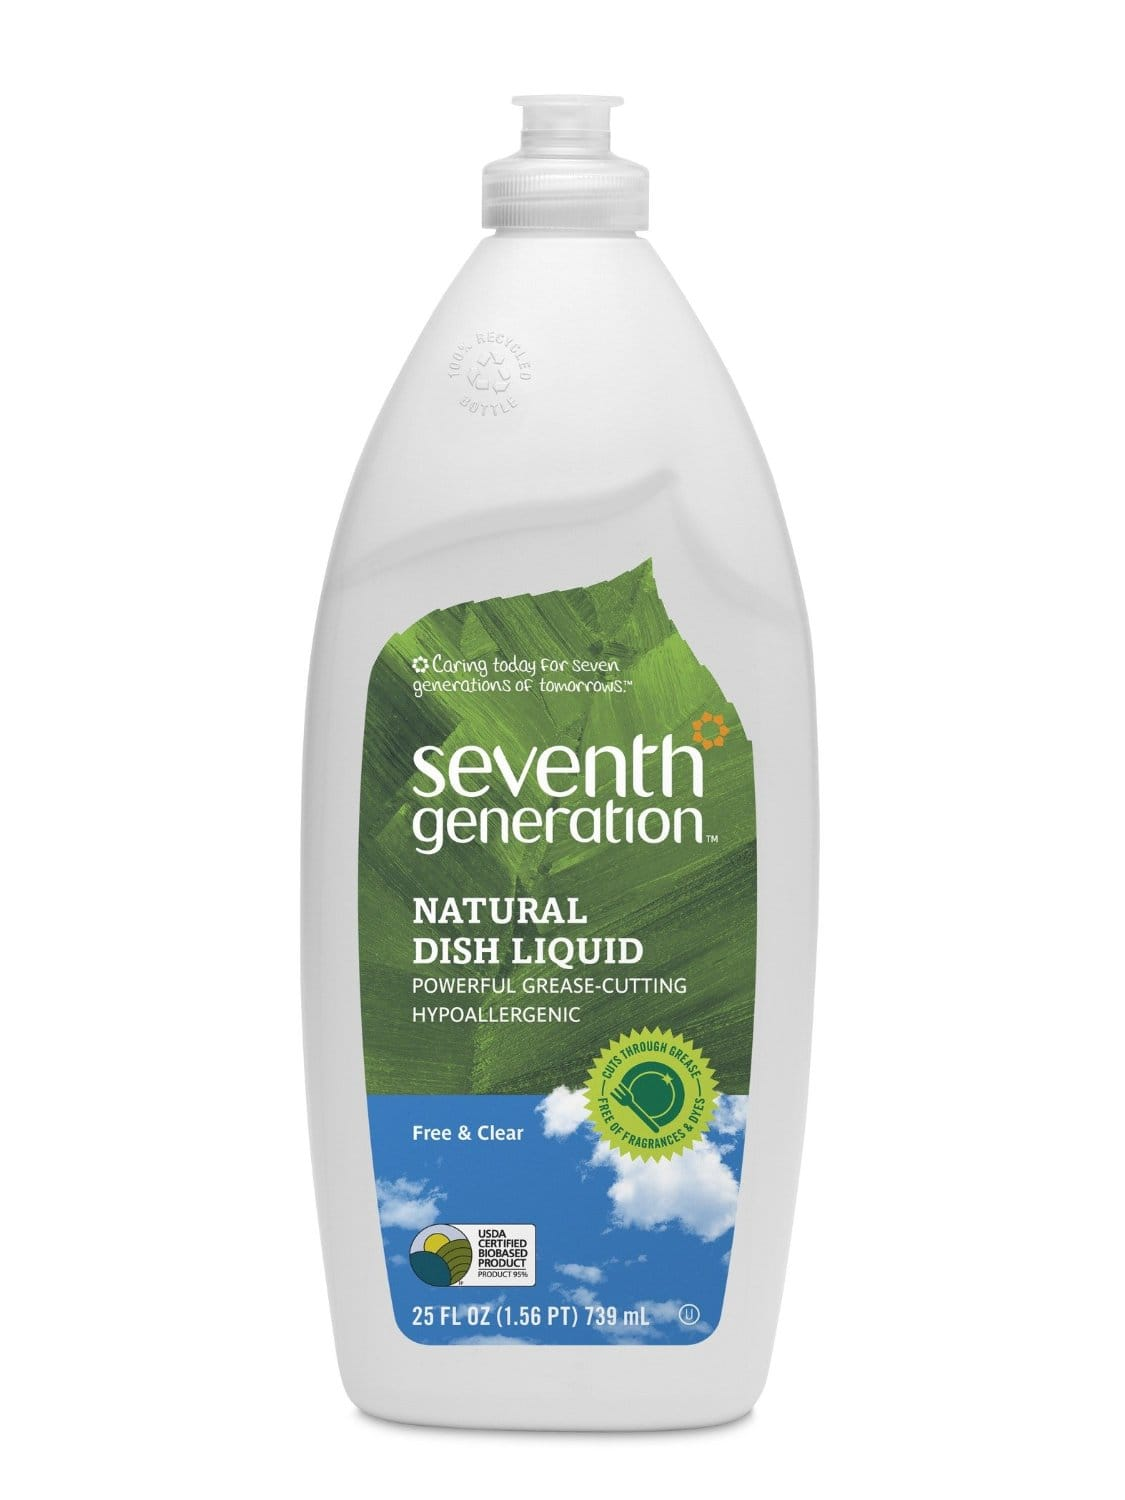 6-Pack 25oz Seventh Generation Natural Dish Liquid (Free & Clear)  $10 + Free Shipping